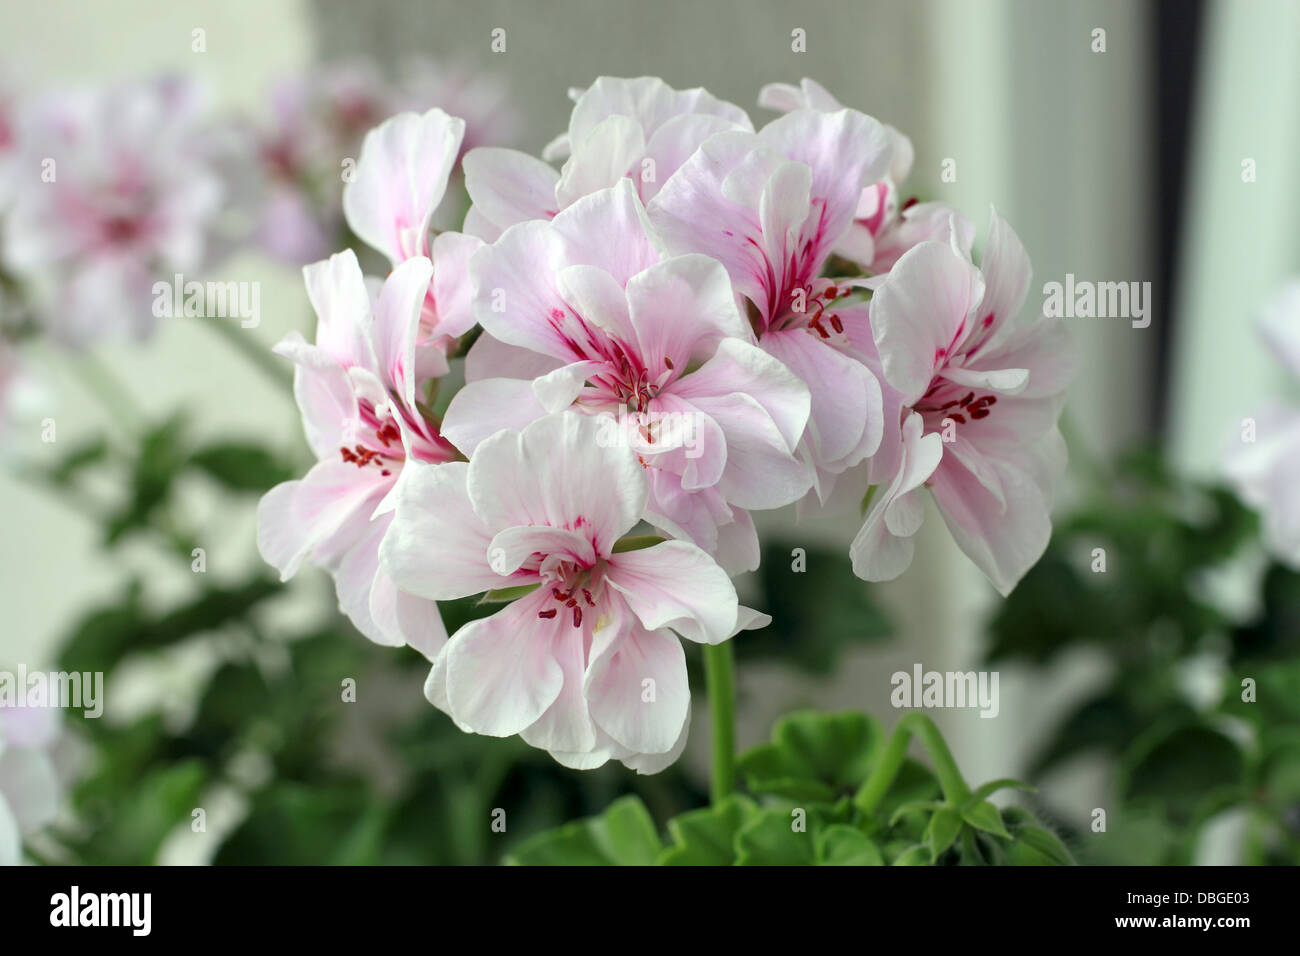 Pelargonium graveolens are flowering plants that include about 200 species, also known as geraniaceae. - Stock Image